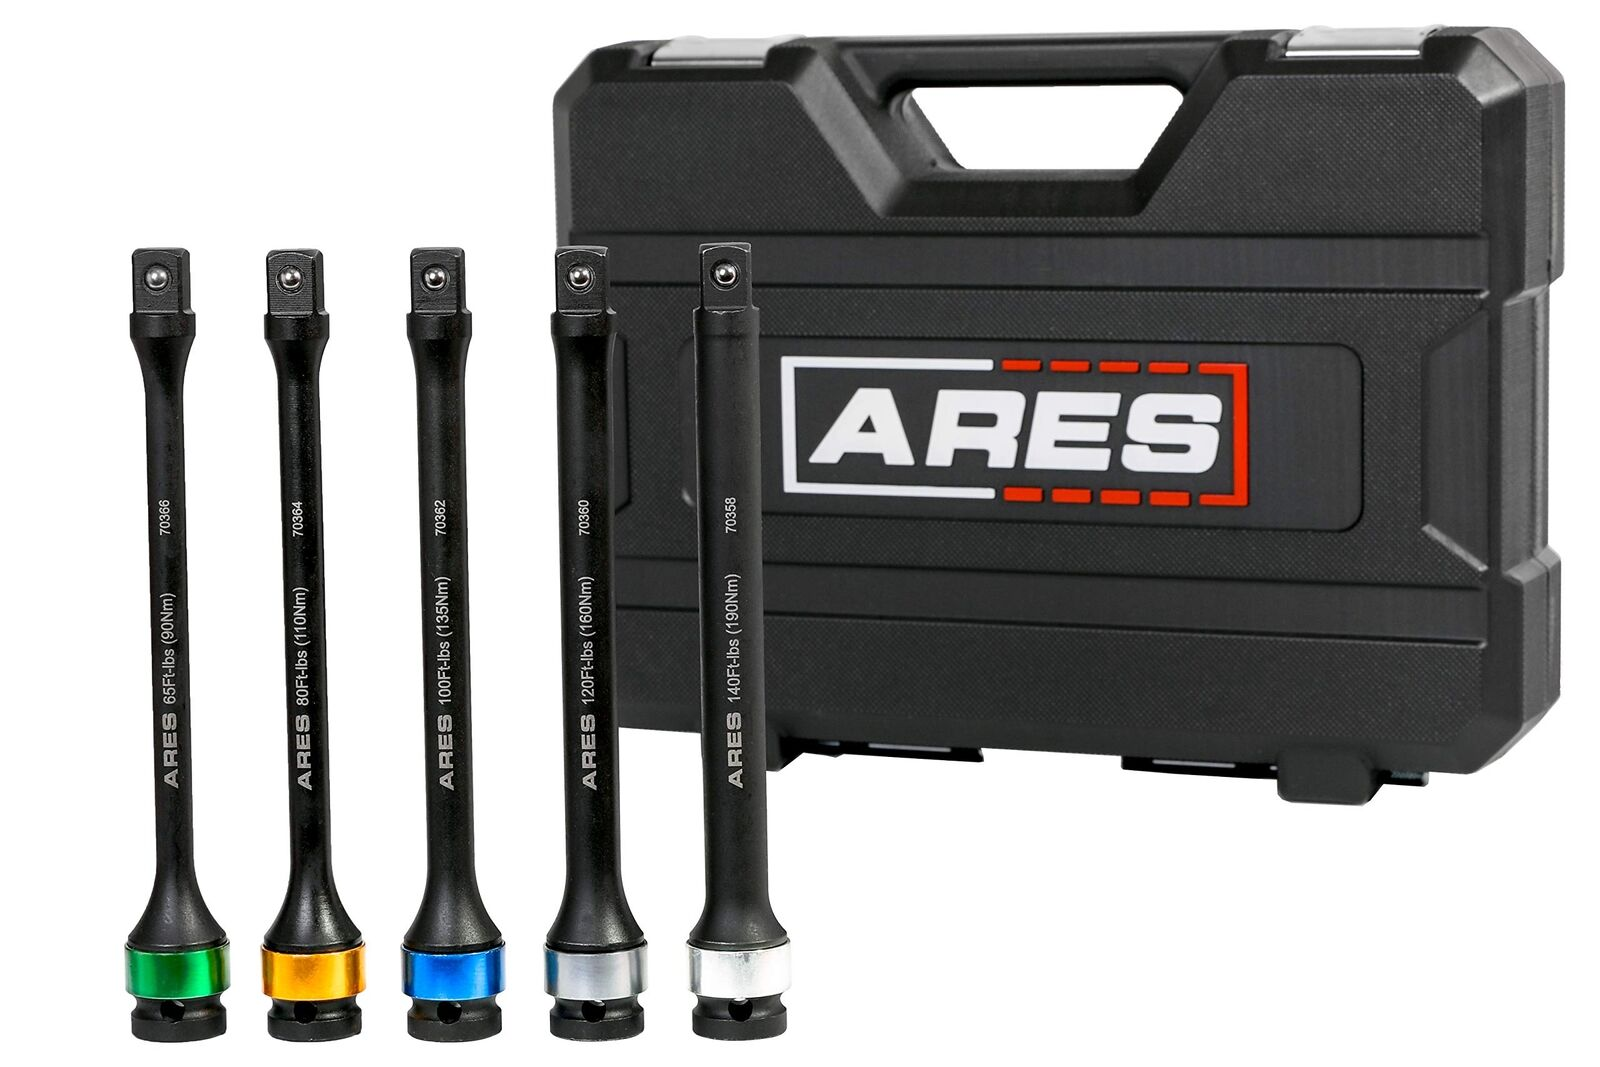 ARES 70367   Torque Limiting Extension Bar Set   Chrome Moly 1 2-Inch Drive 8